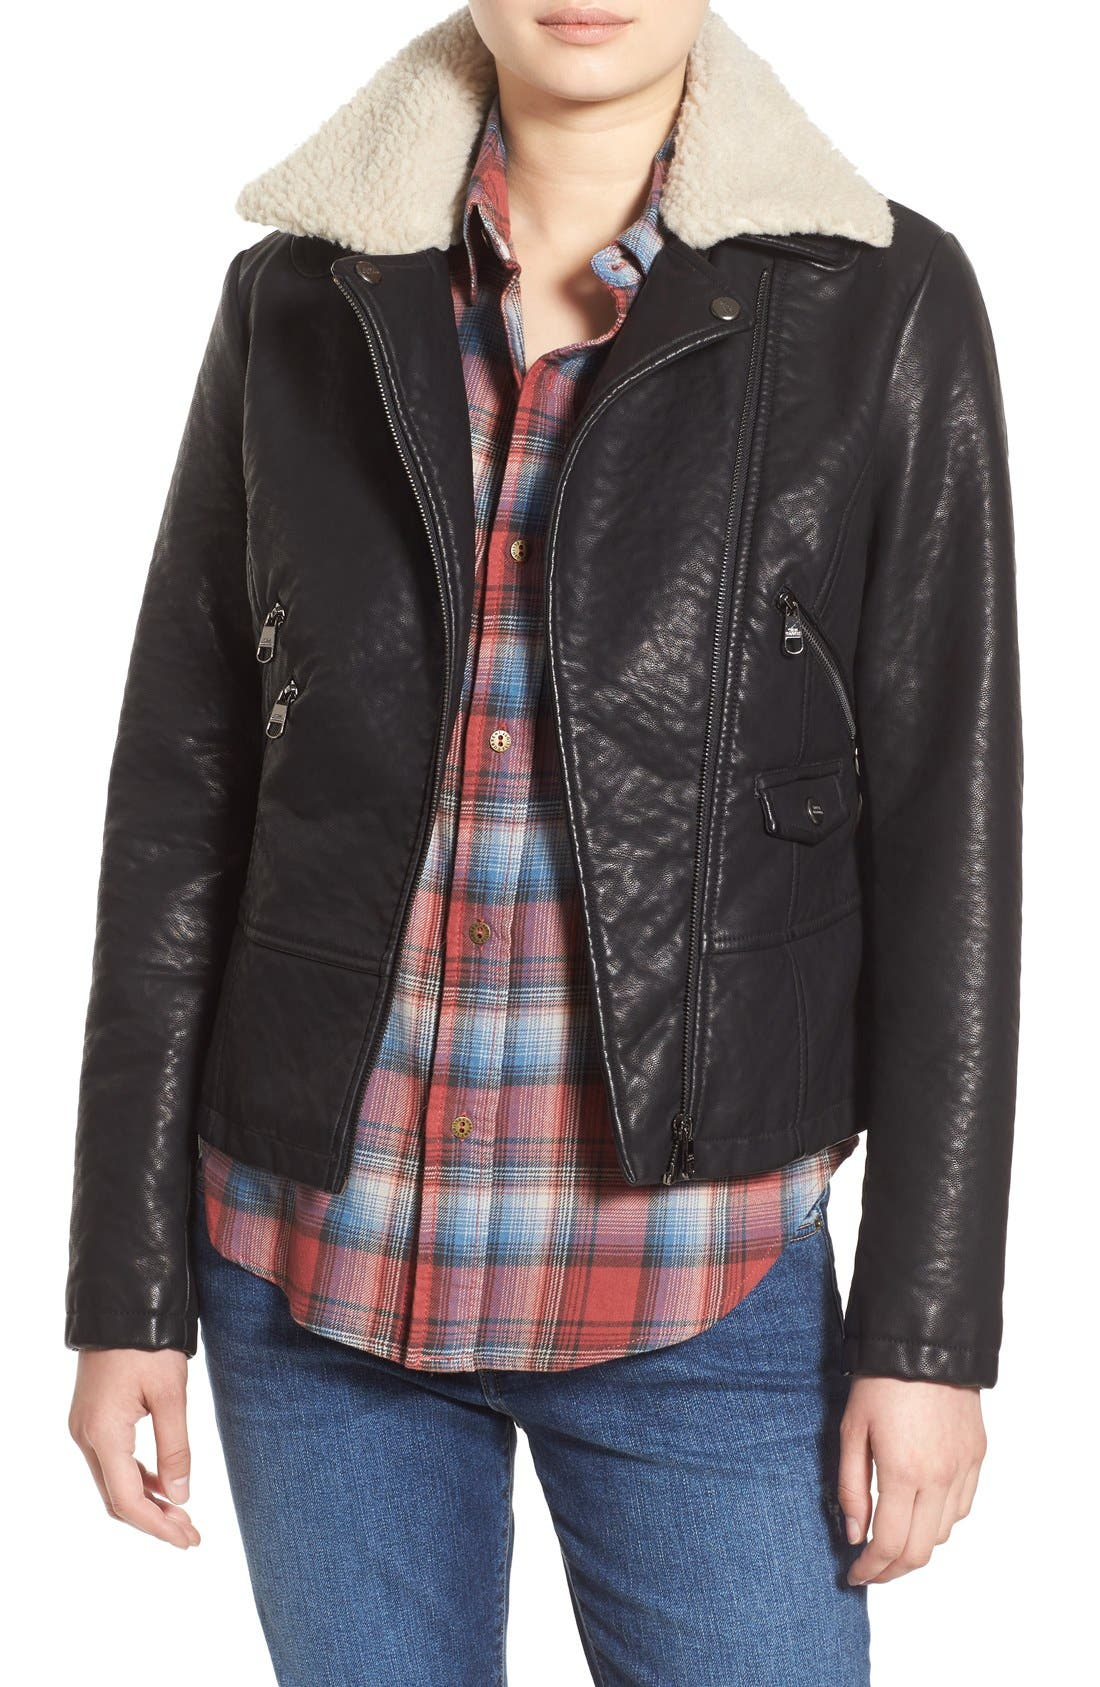 Alternate Image 1 Selected - Steve Madden Faux Leather Moto Jacket with Faux Shearling Collar